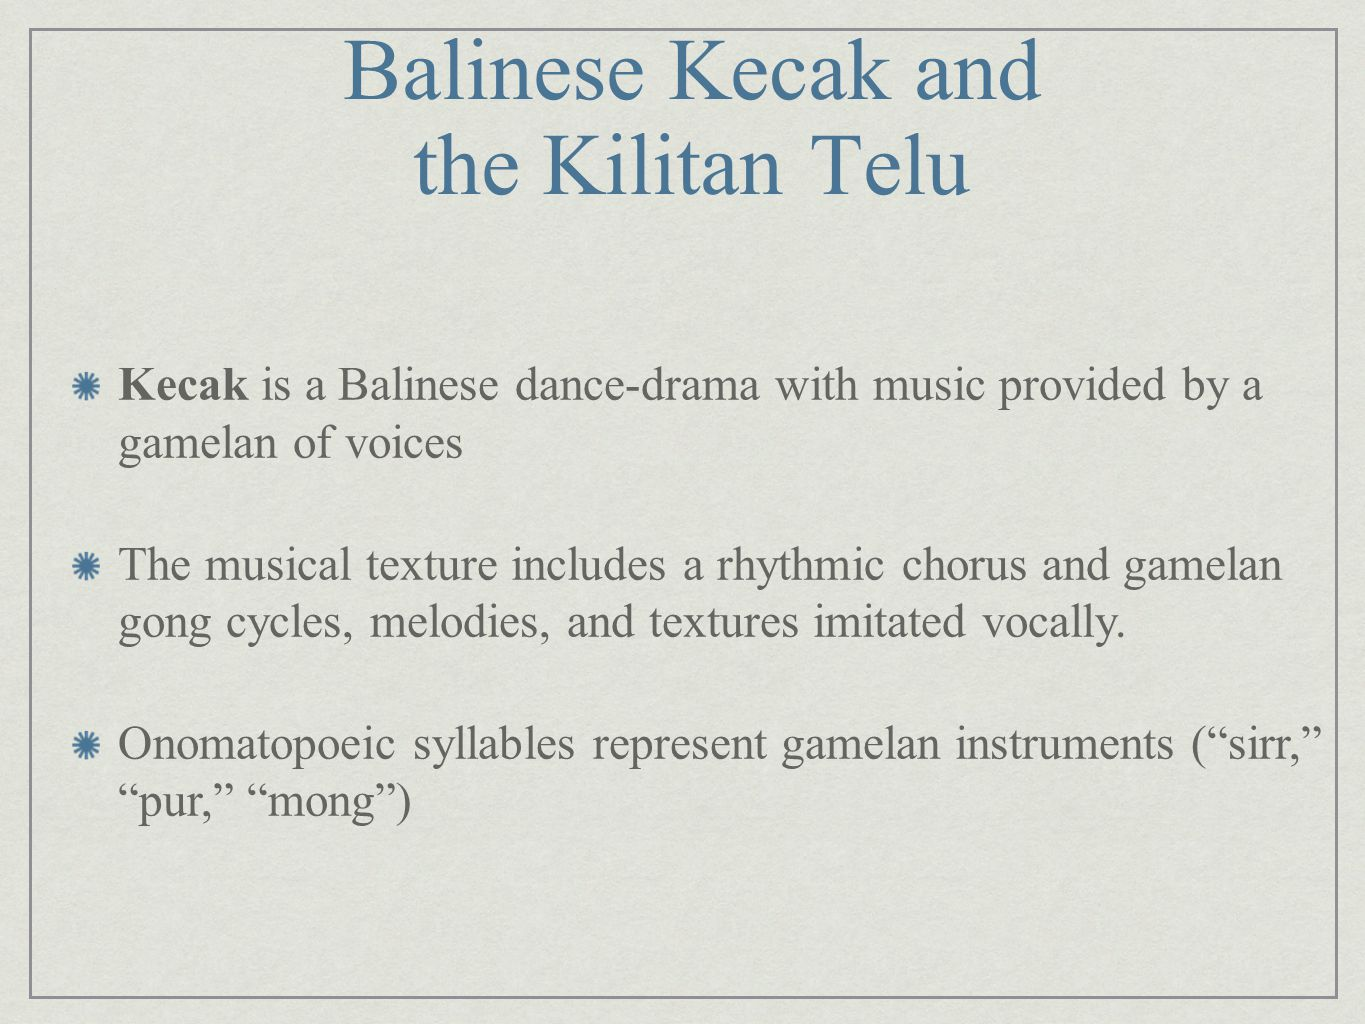 Balinese Kecak and the Kilitan Telu Kecak is a Balinese dance-drama with music provided by a gamelan of voices The musical texture includes a rhythmic